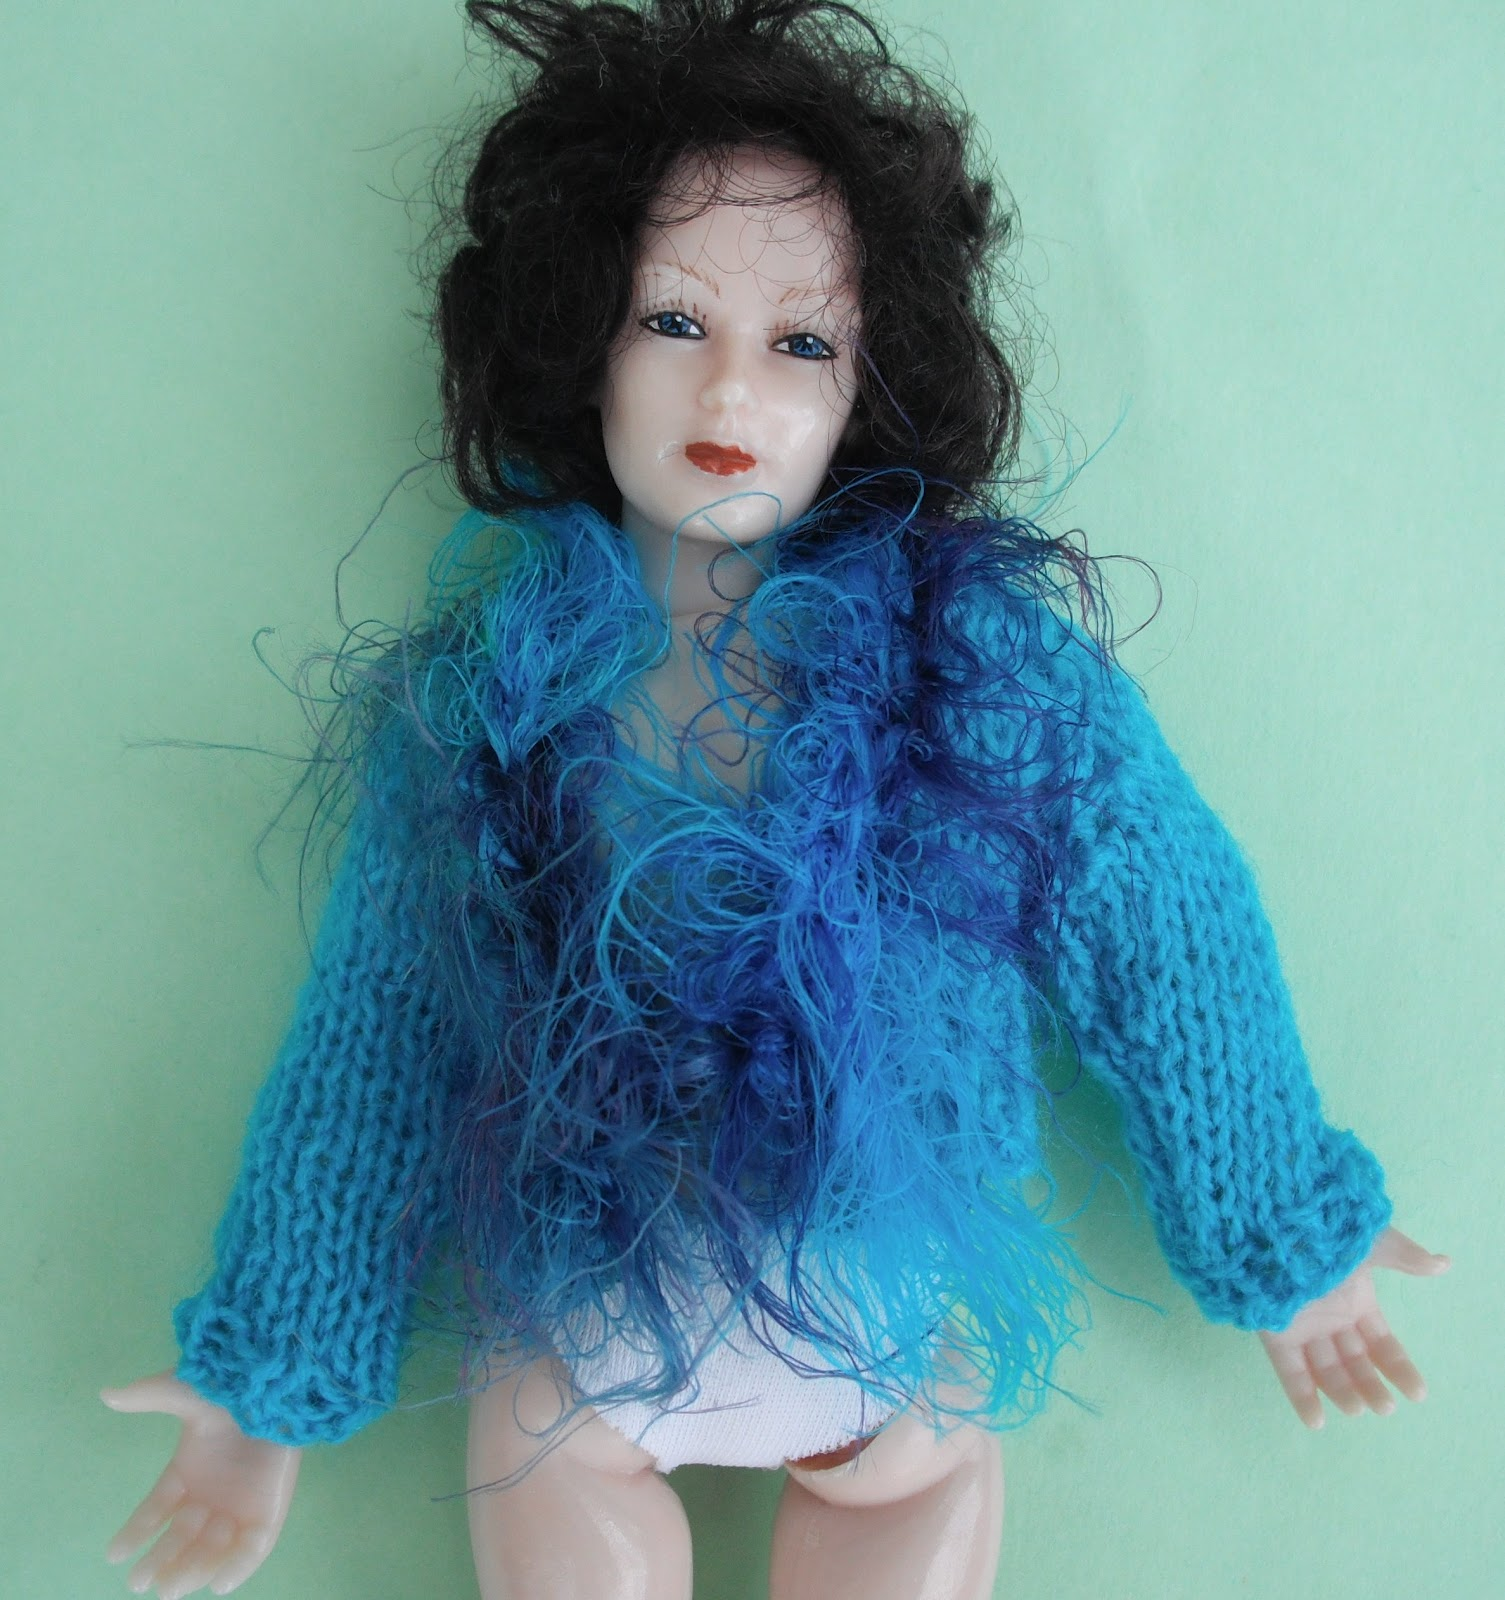 Knitting Patterns For Dollhouse Dolls : bitstobuy: Free gift with all website orders in June of ready knitted jacket